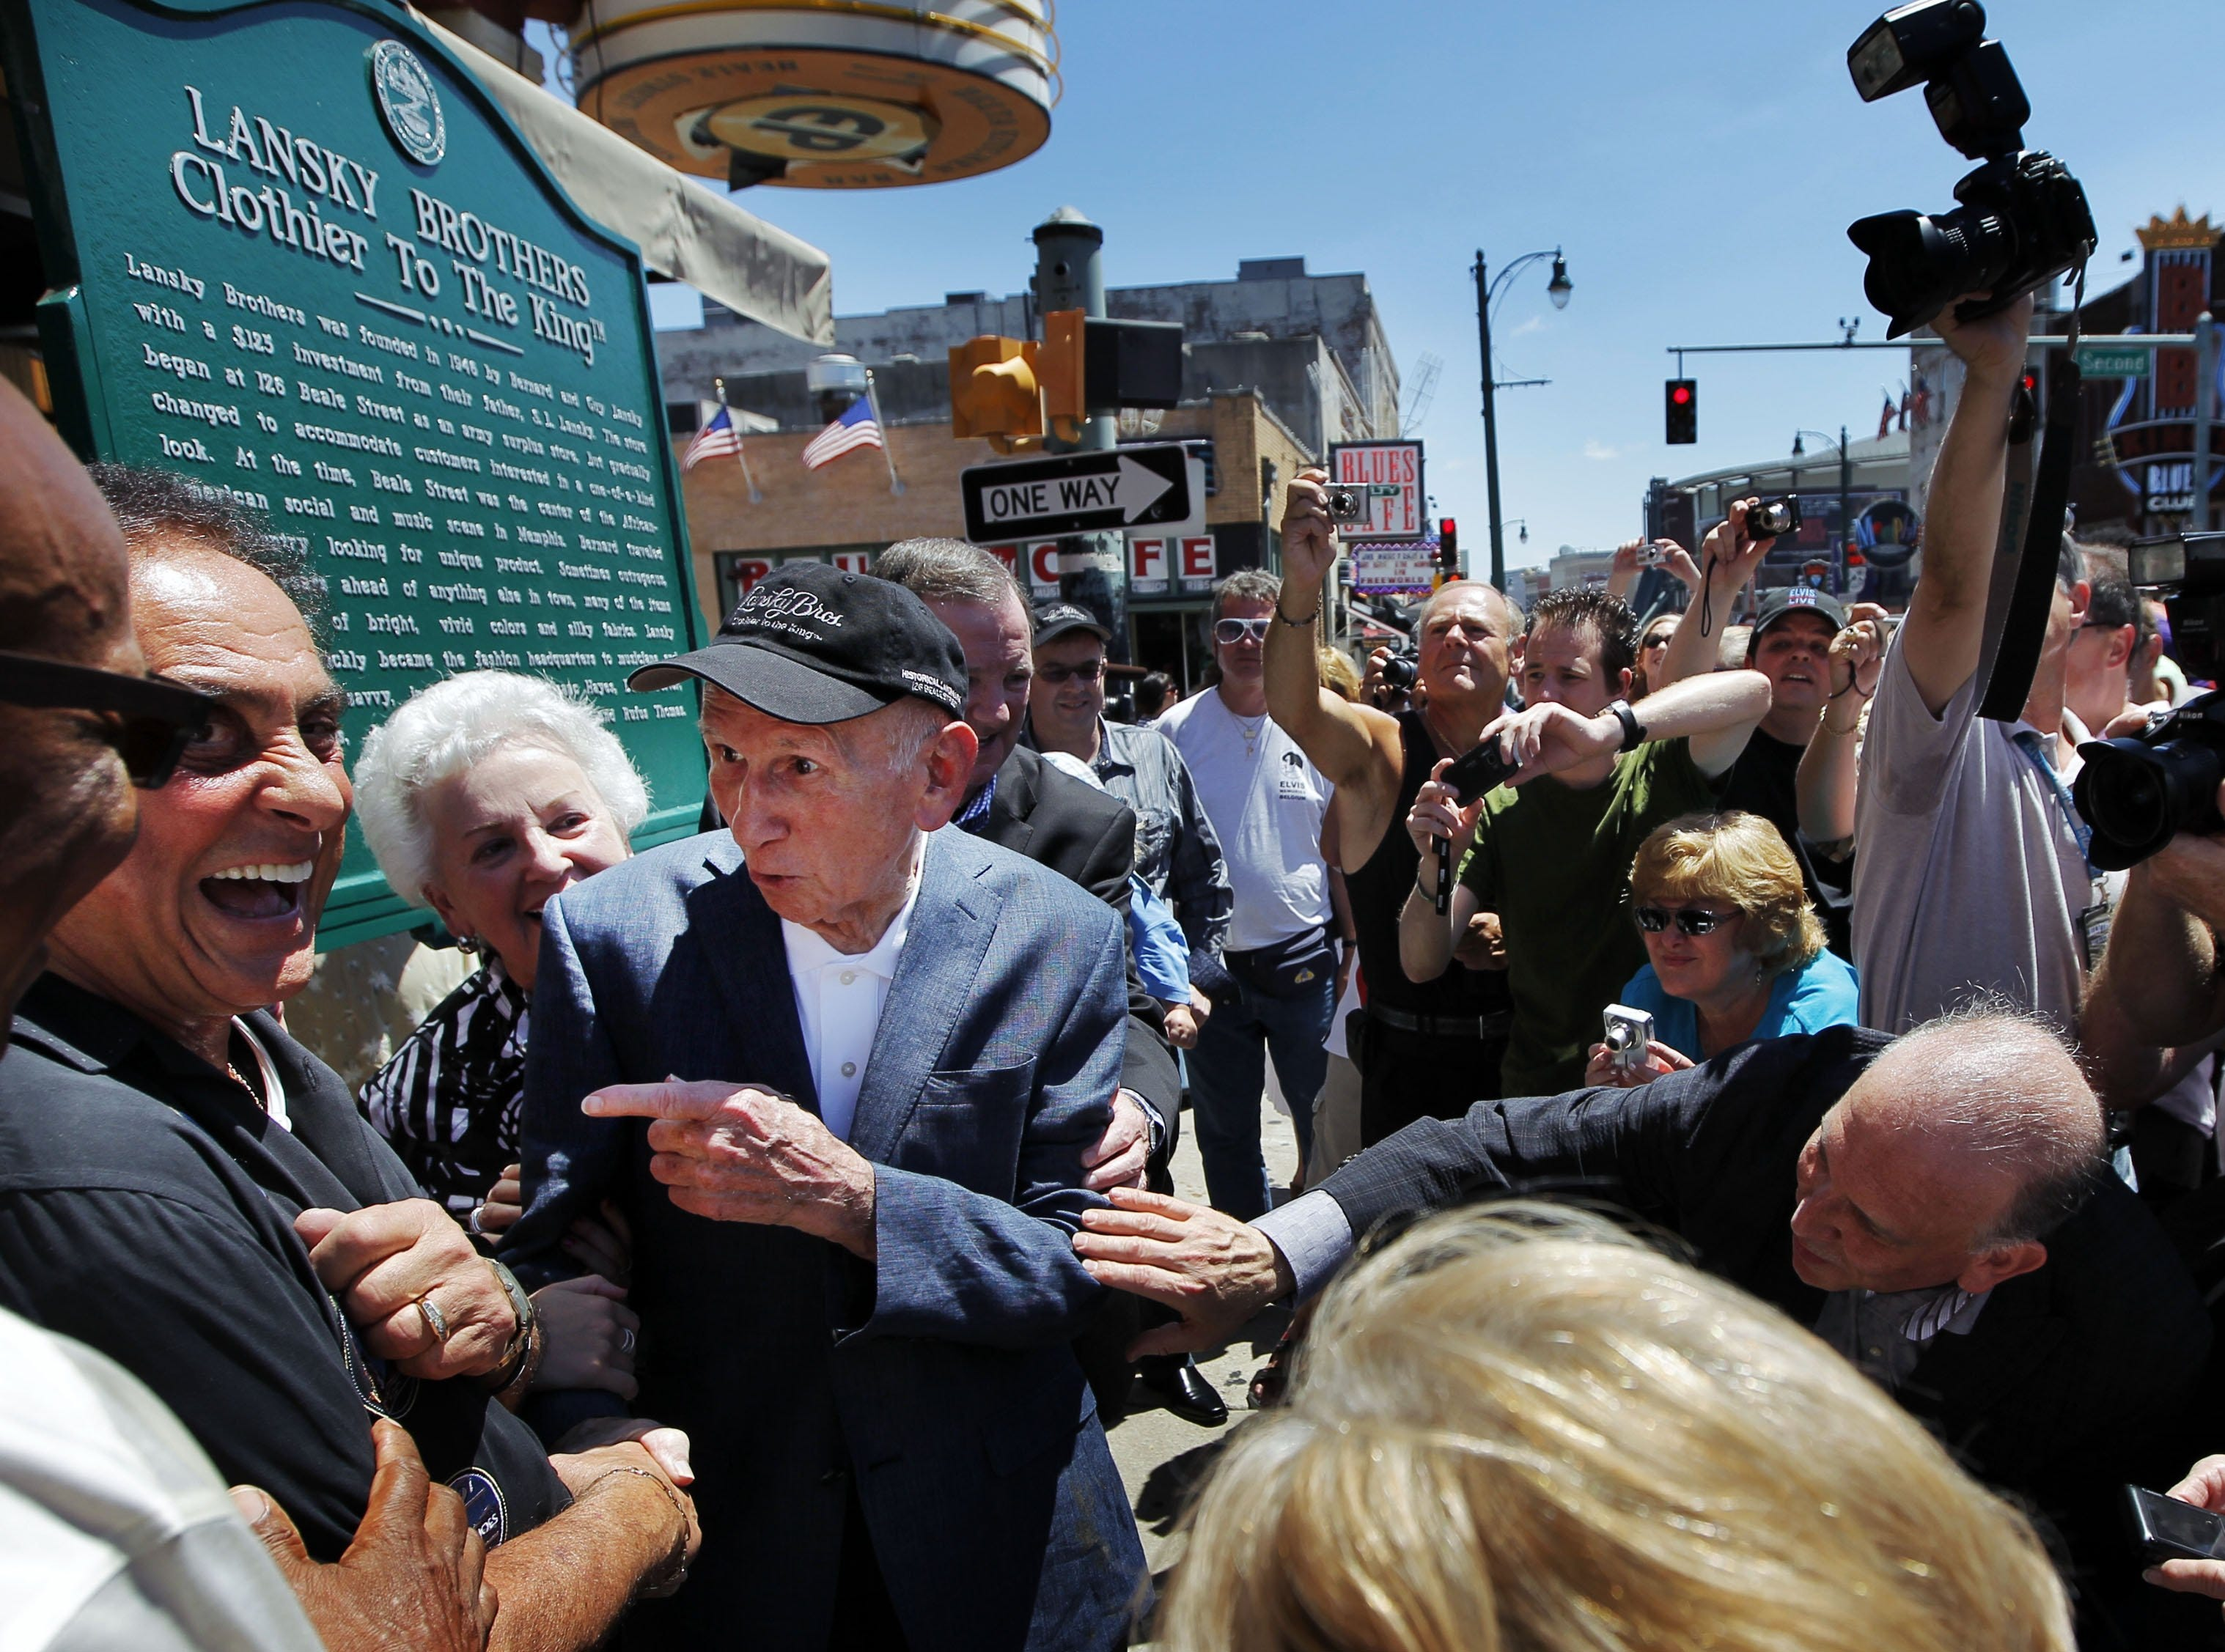 """August 14, 2011 - Memphis DJ George Klein (left) jokes with Lansky Brothers founder Bernard Lansky (second from left) """"Clothier to the King"""" during the unveiling of a new plaque to mark the original location of the historic clothing store on Beale St. Sunday afternoon."""